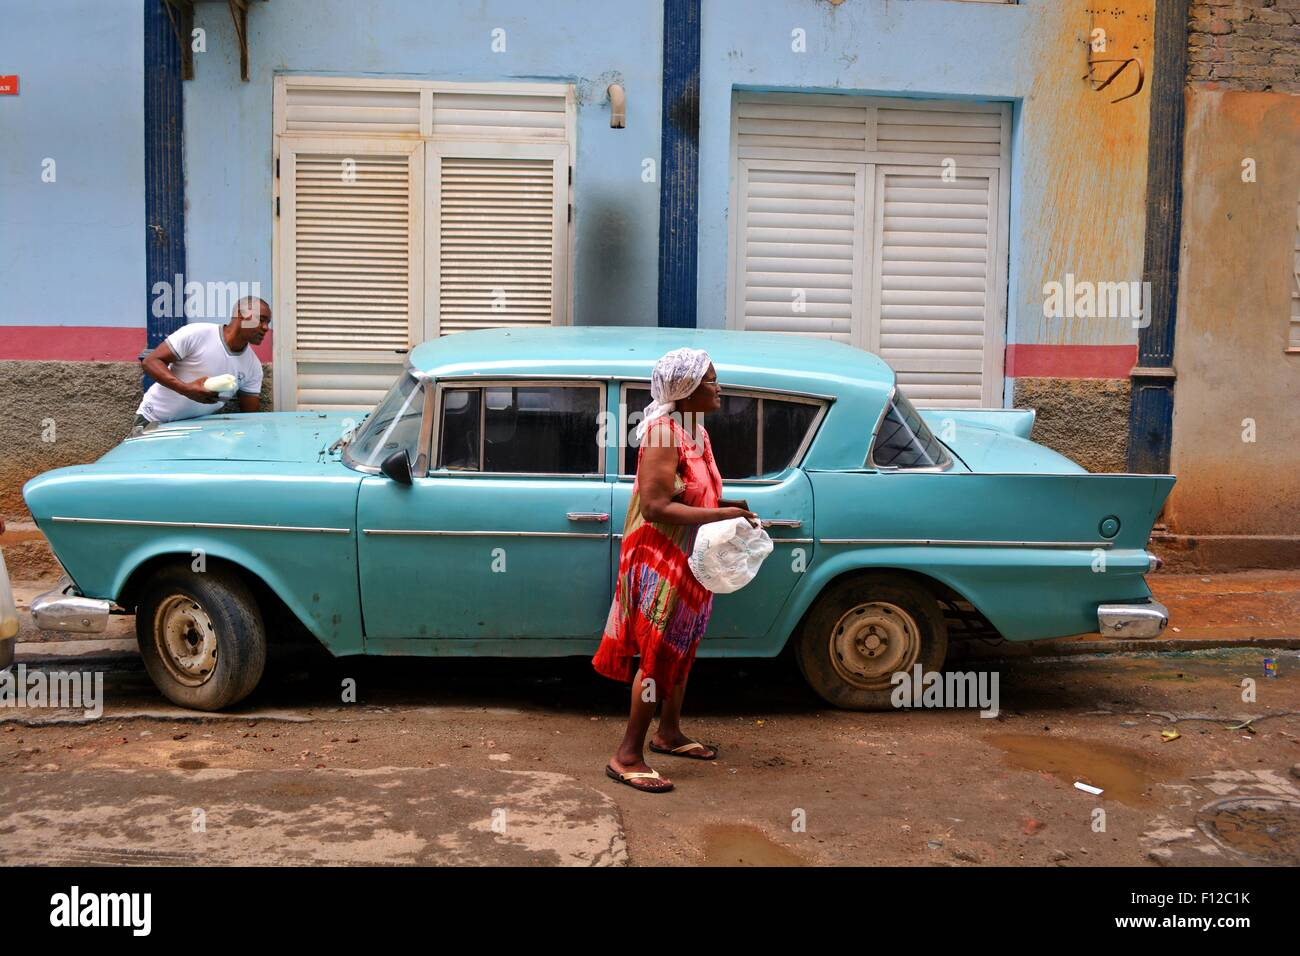 Blue vintage car parked on the pavement in a residential street in Havana, Cuba. A lady is walking by and a man - Stock Image